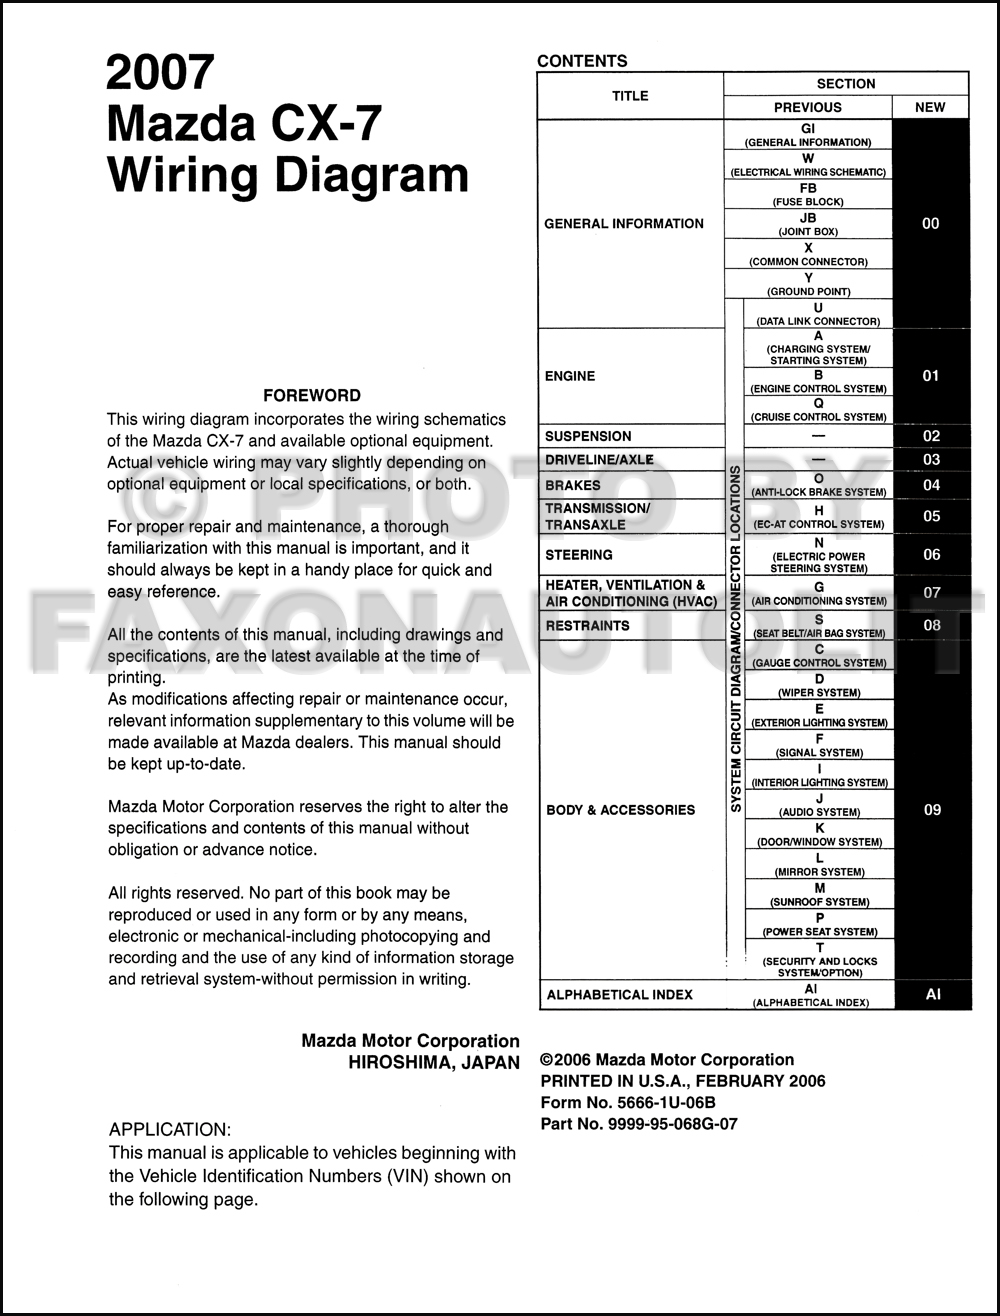 WRG-9914] Mazda 5 Radio Wiring Diagram on